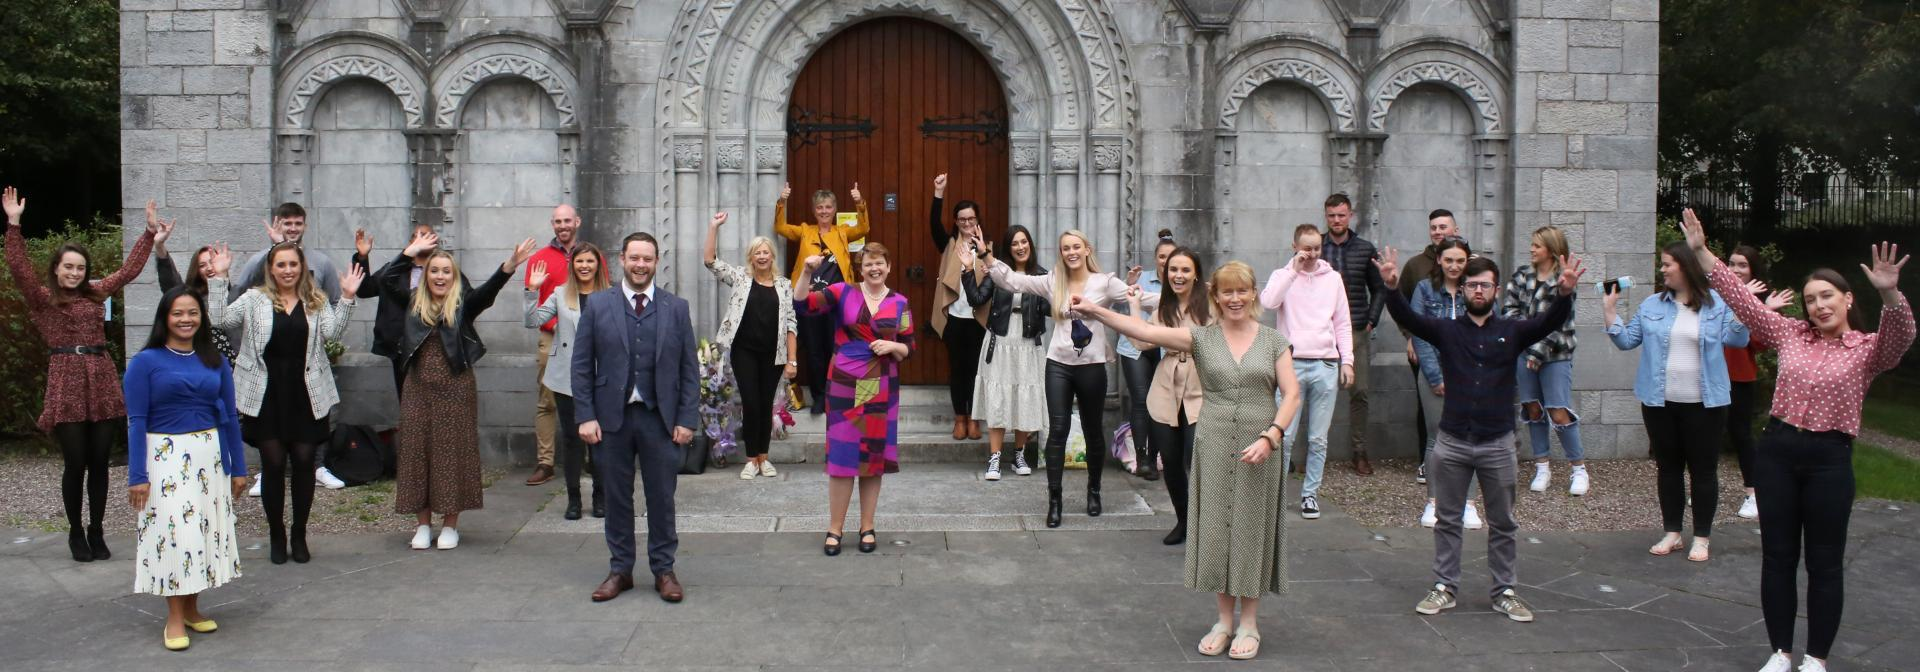 Year four mental Health Student Nurses celebrate with a blessing of the Hands Ceremony at the Honan Chapel, UCC